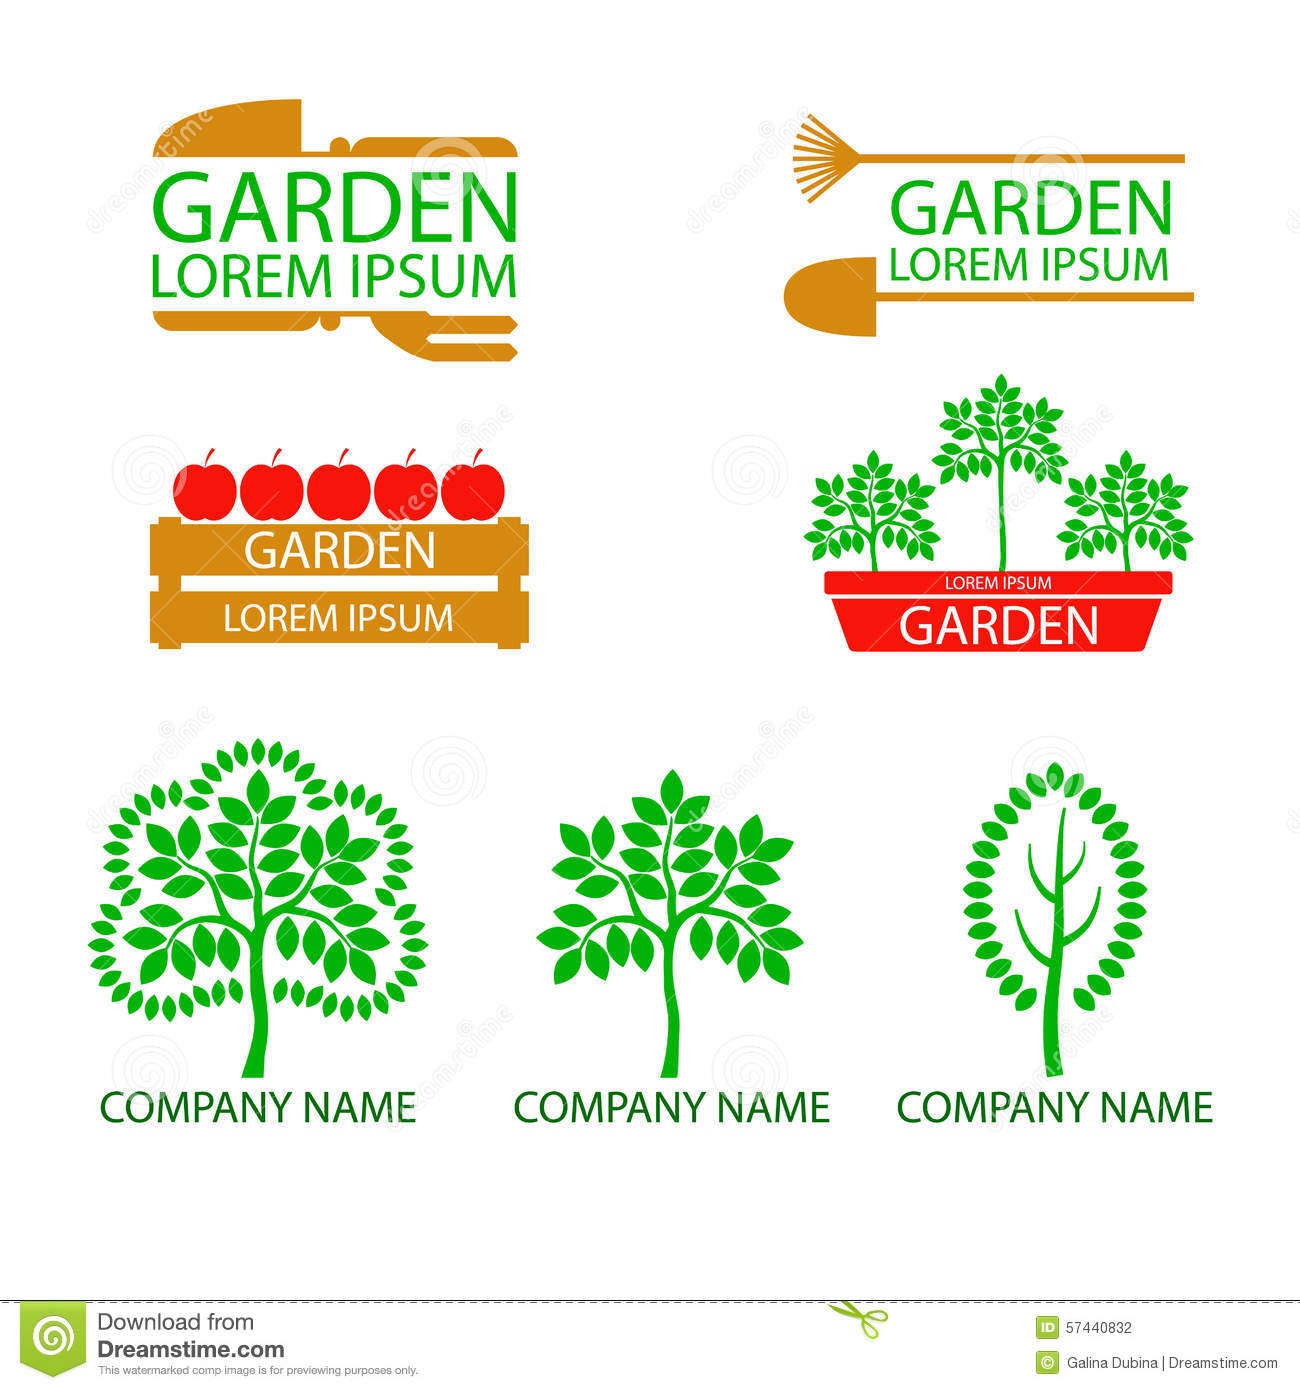 A Set Of Garden Logos. Life, Abstract.